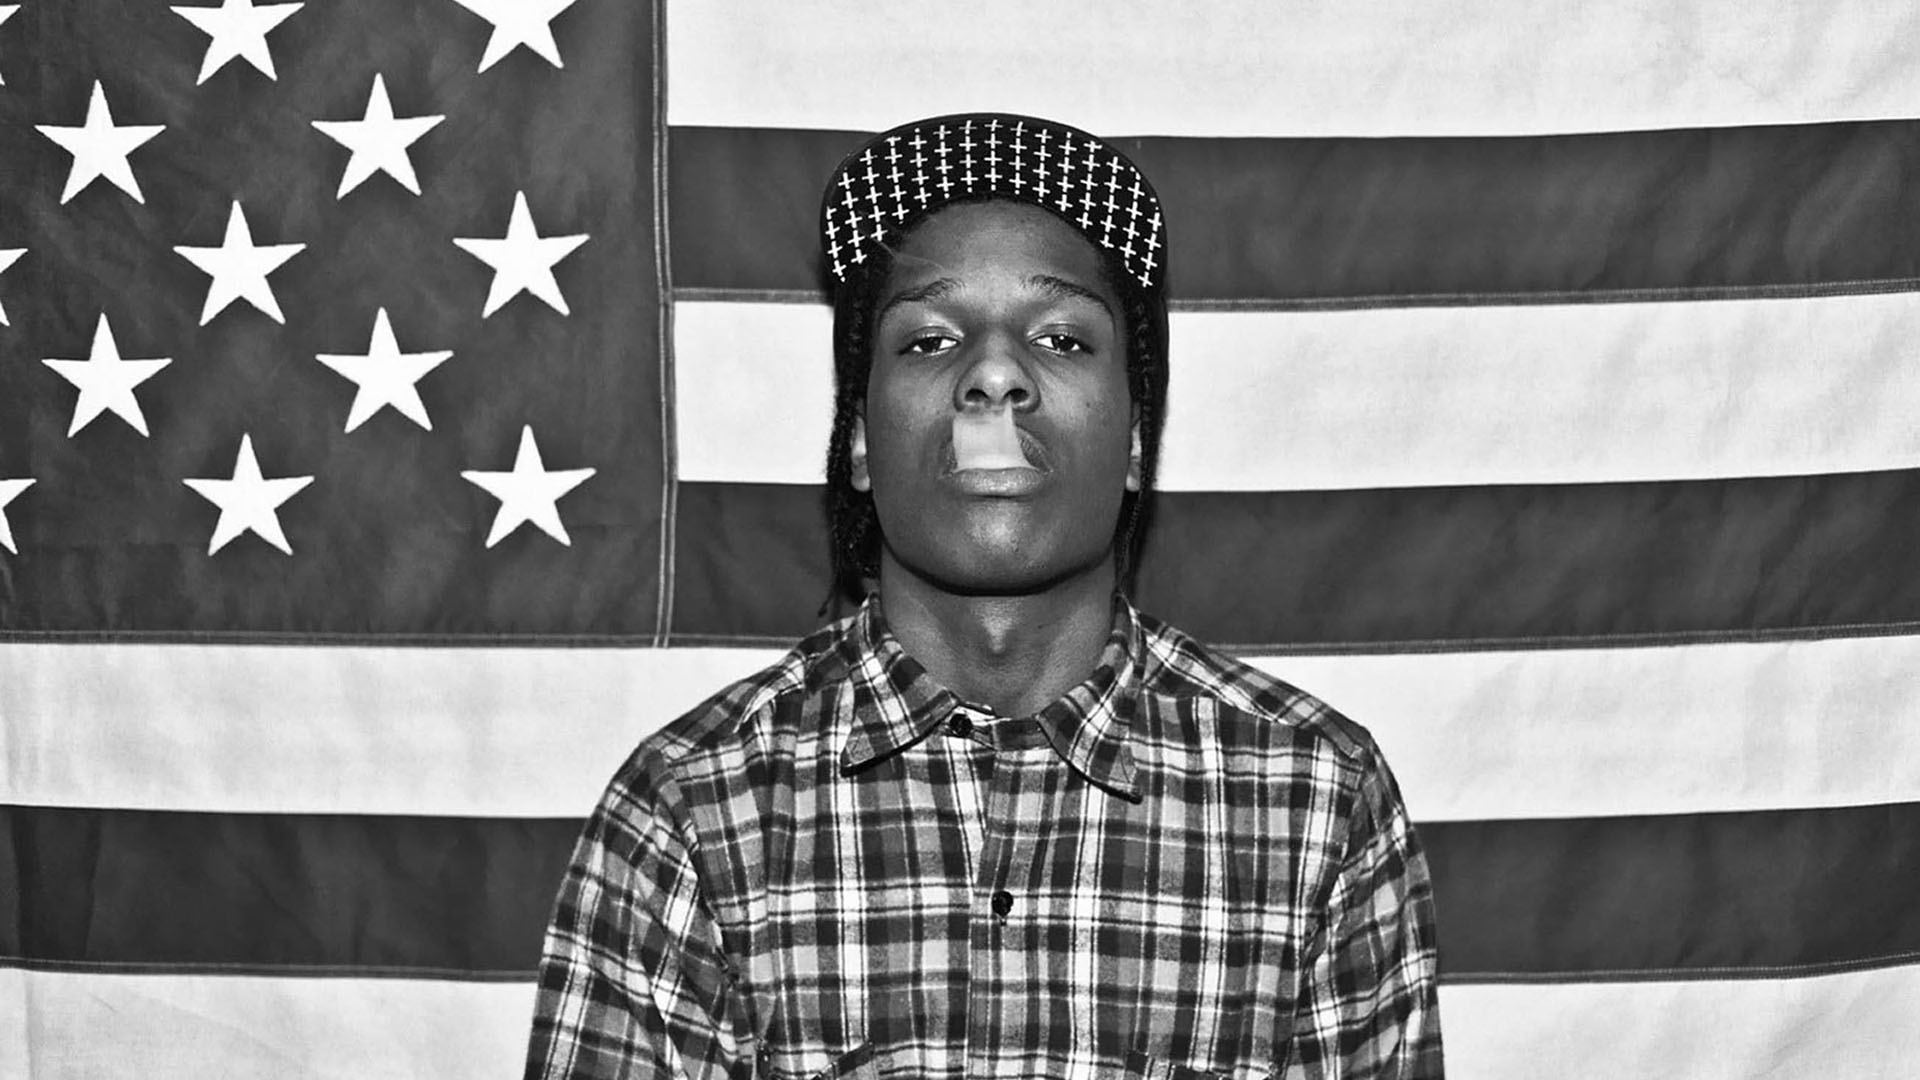 Asap rocky wallpaper hd wallpapersafari - Asap wallpaper ...